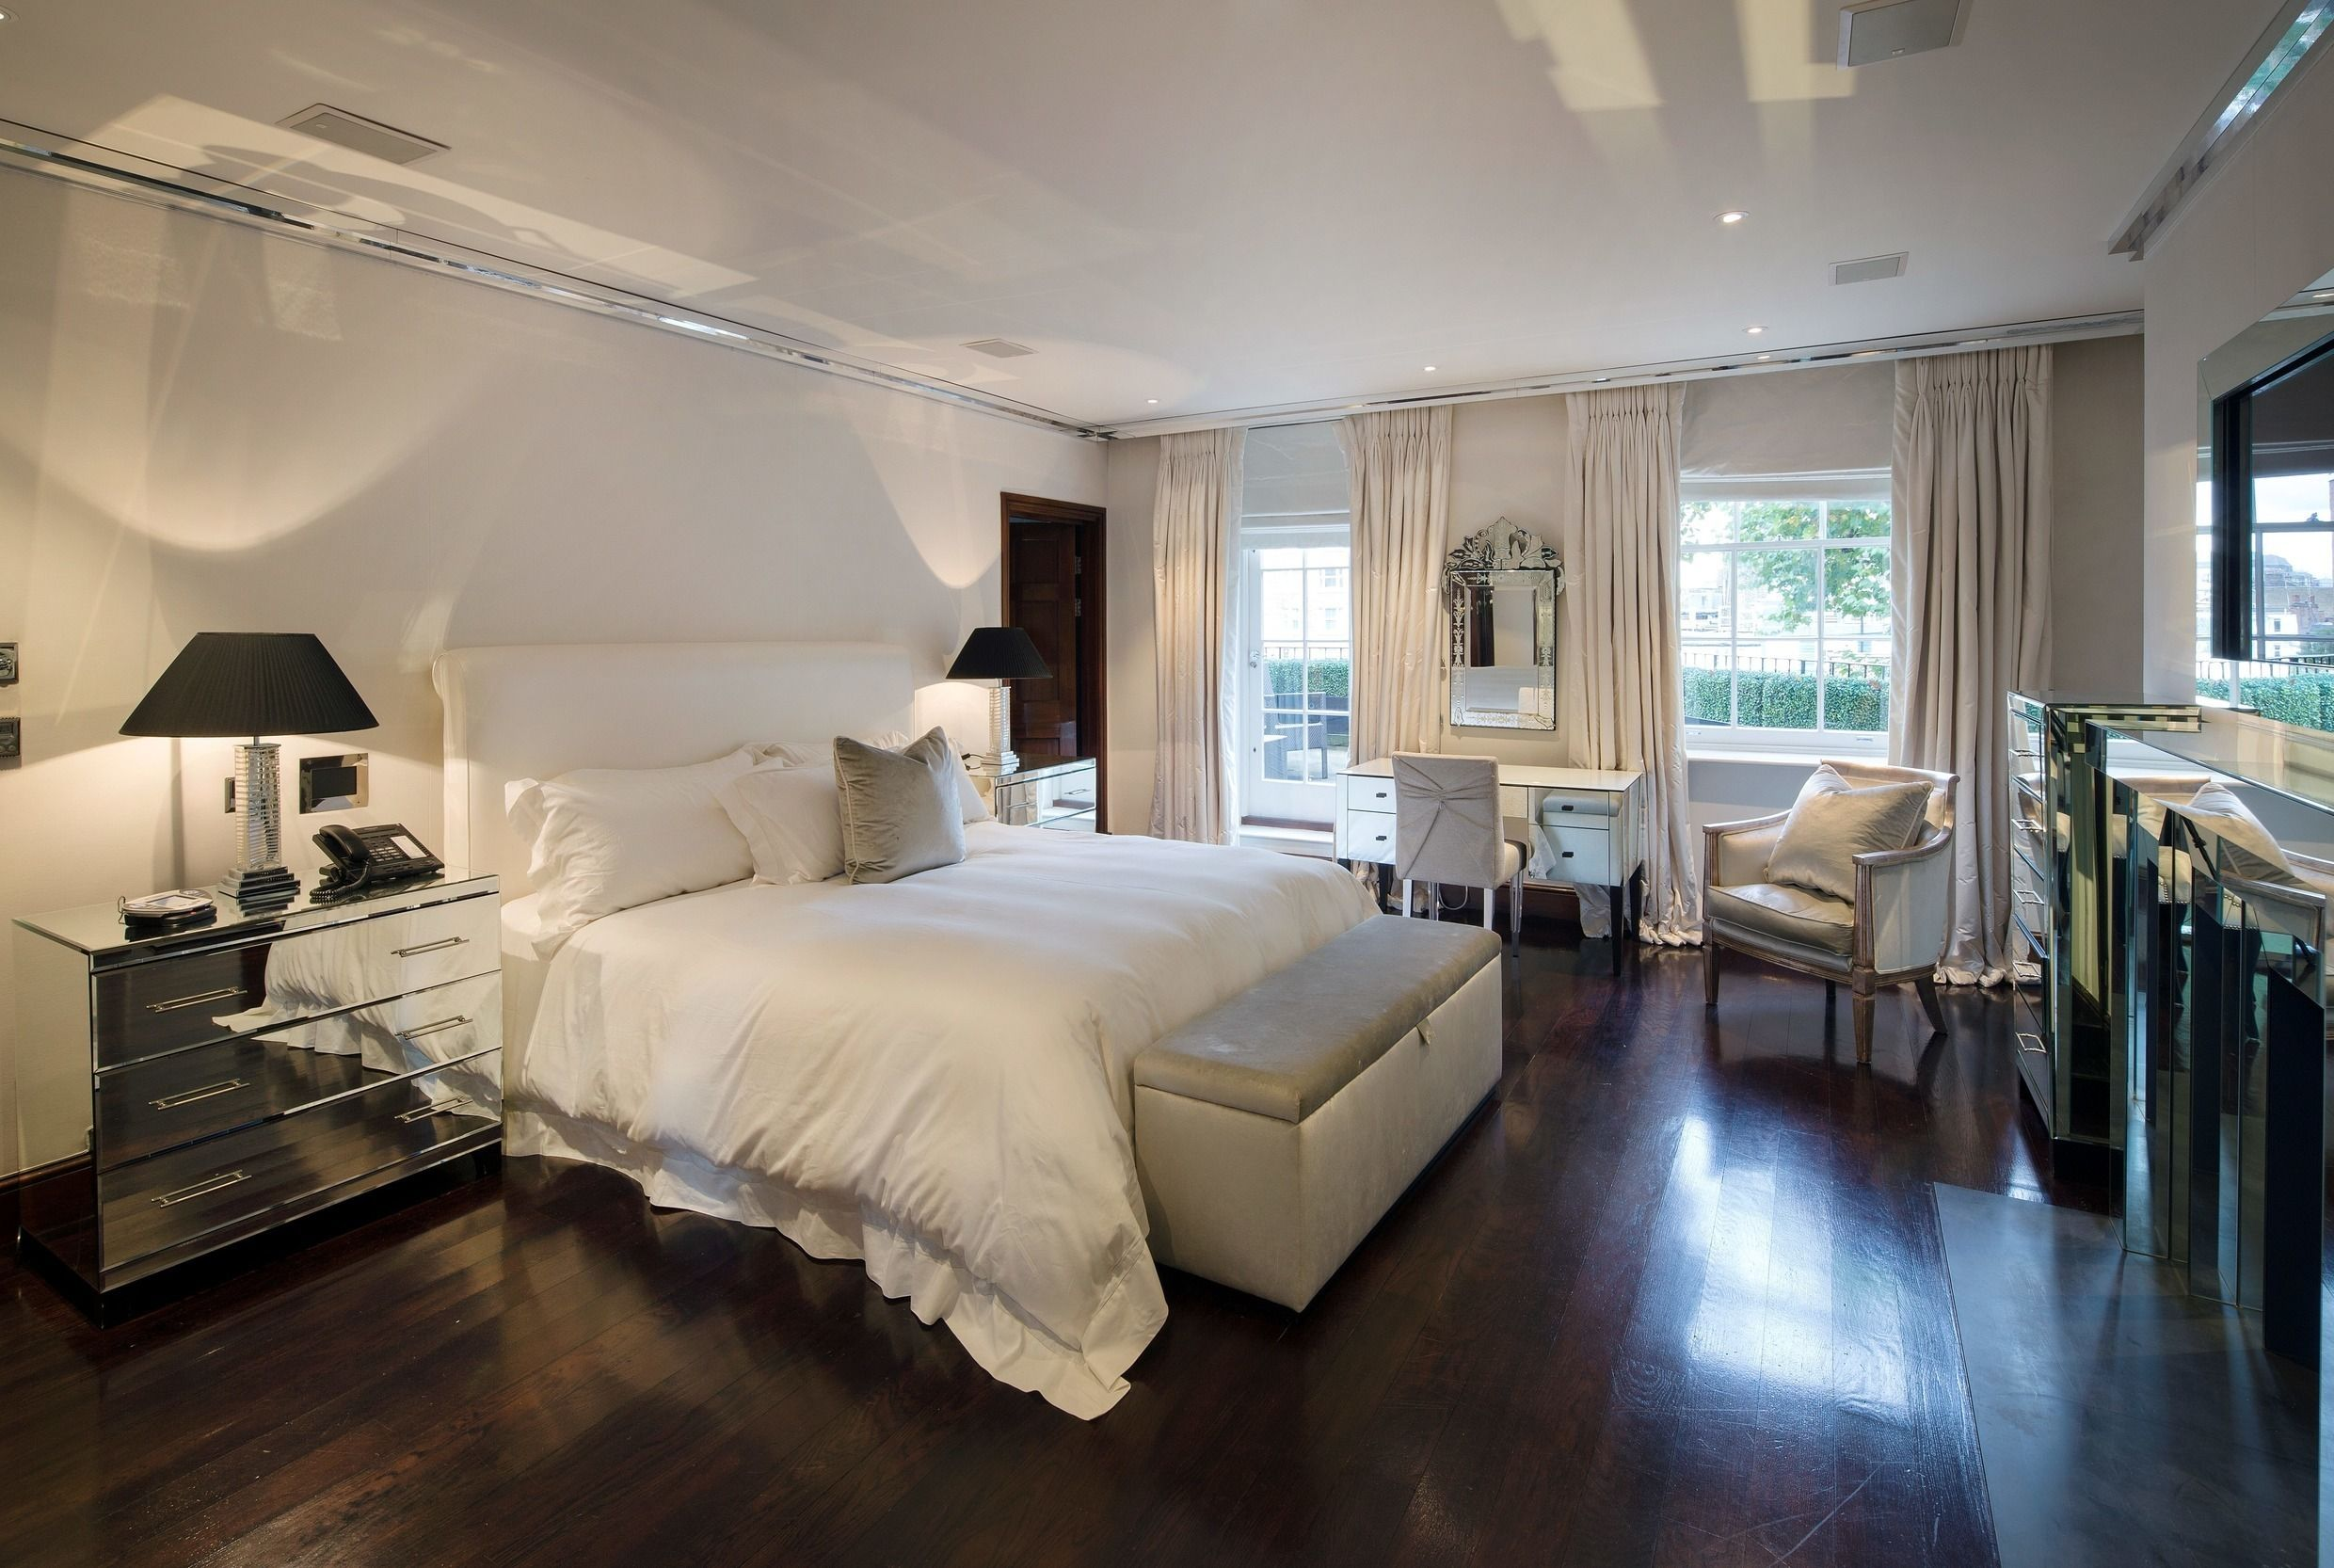 Breathtaking Decor And Placement  Bedroom Decor  Pinterest Brilliant Expensive Bedrooms Review